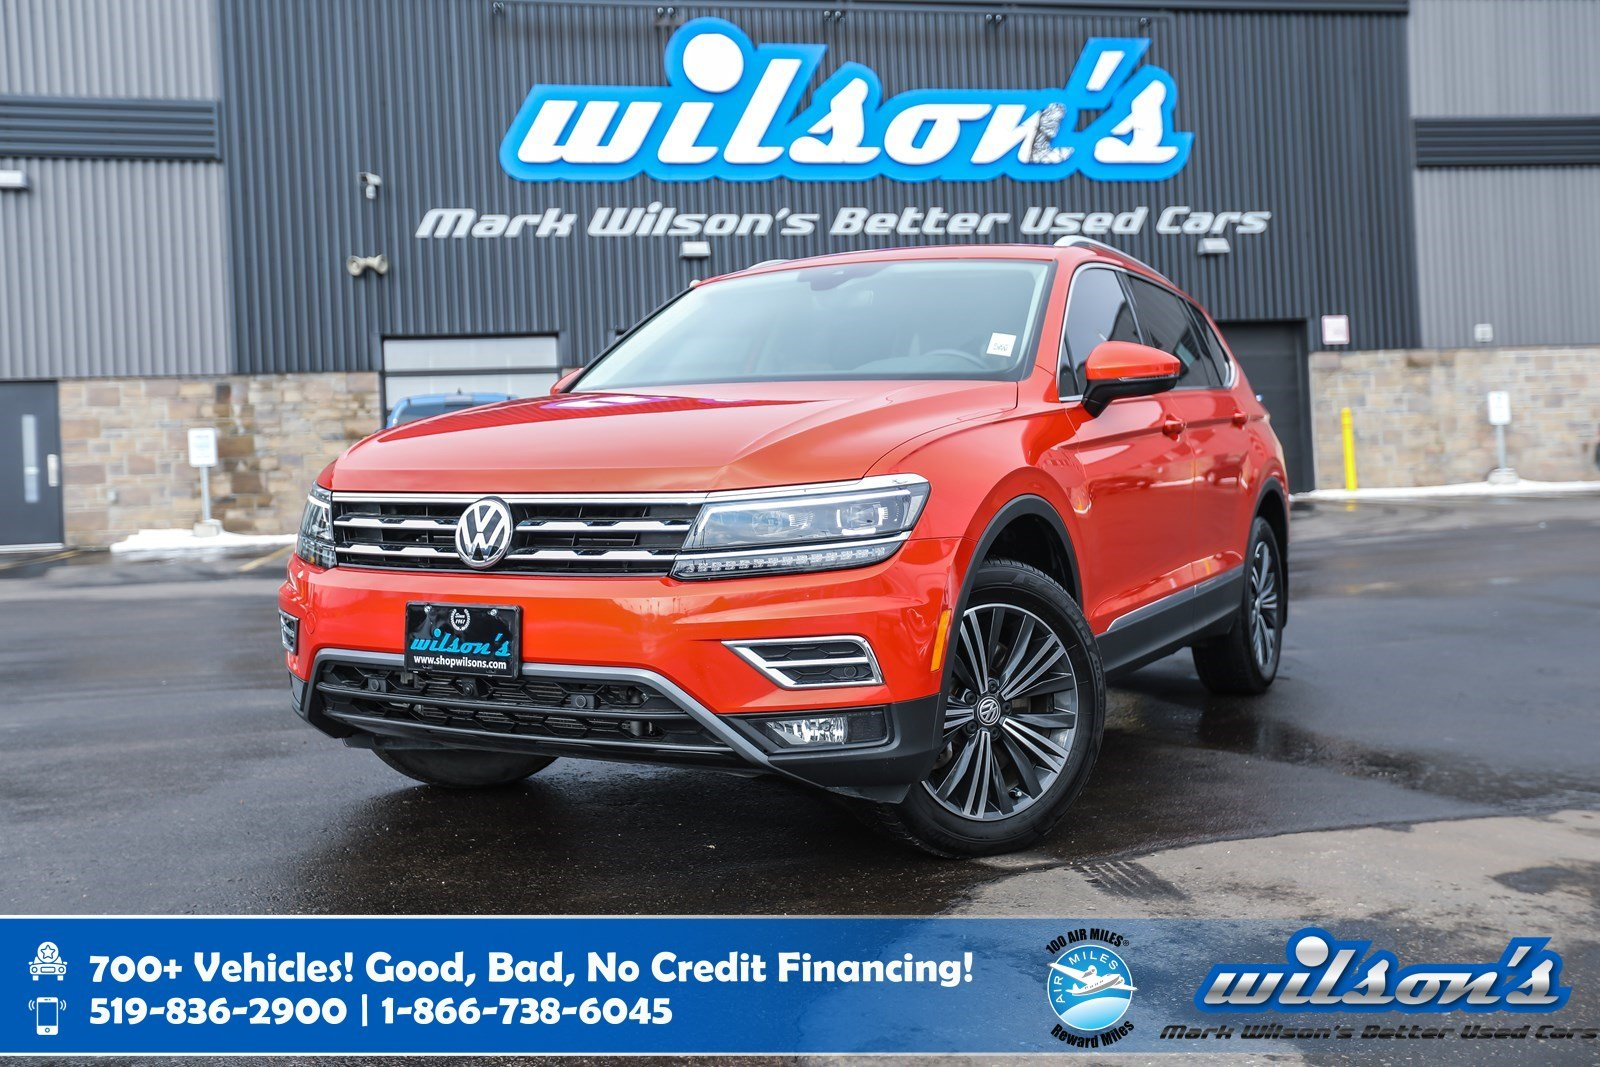 Certified Pre-Owned 2018 Volkswagen Tiguan Highline, Navigation, Sunroof, Rear Camera, with Driver Assistance Pkg! & More!